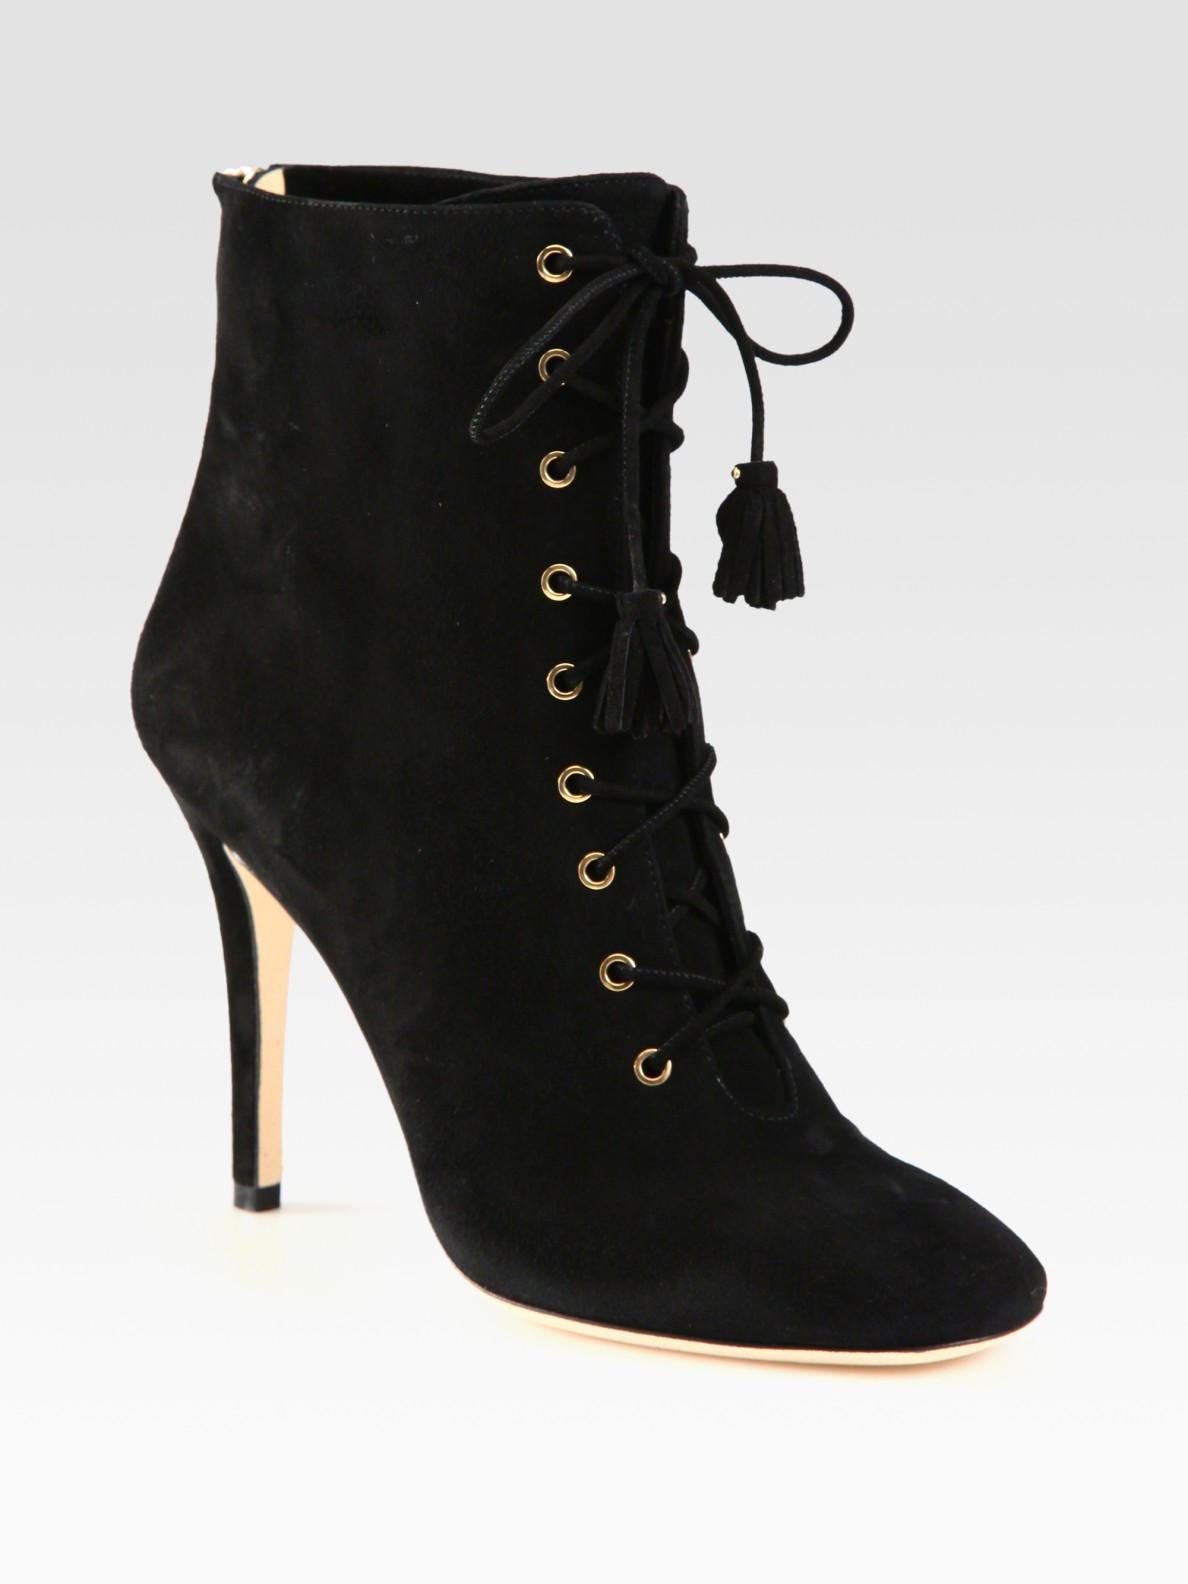 Clearance Buy Jimmy choo Lace Up Boots Cheap Largest Supplier Low Cost Cheap Online Footlocker Pictures Cheap Online Discount High Quality 4yDlTOAs